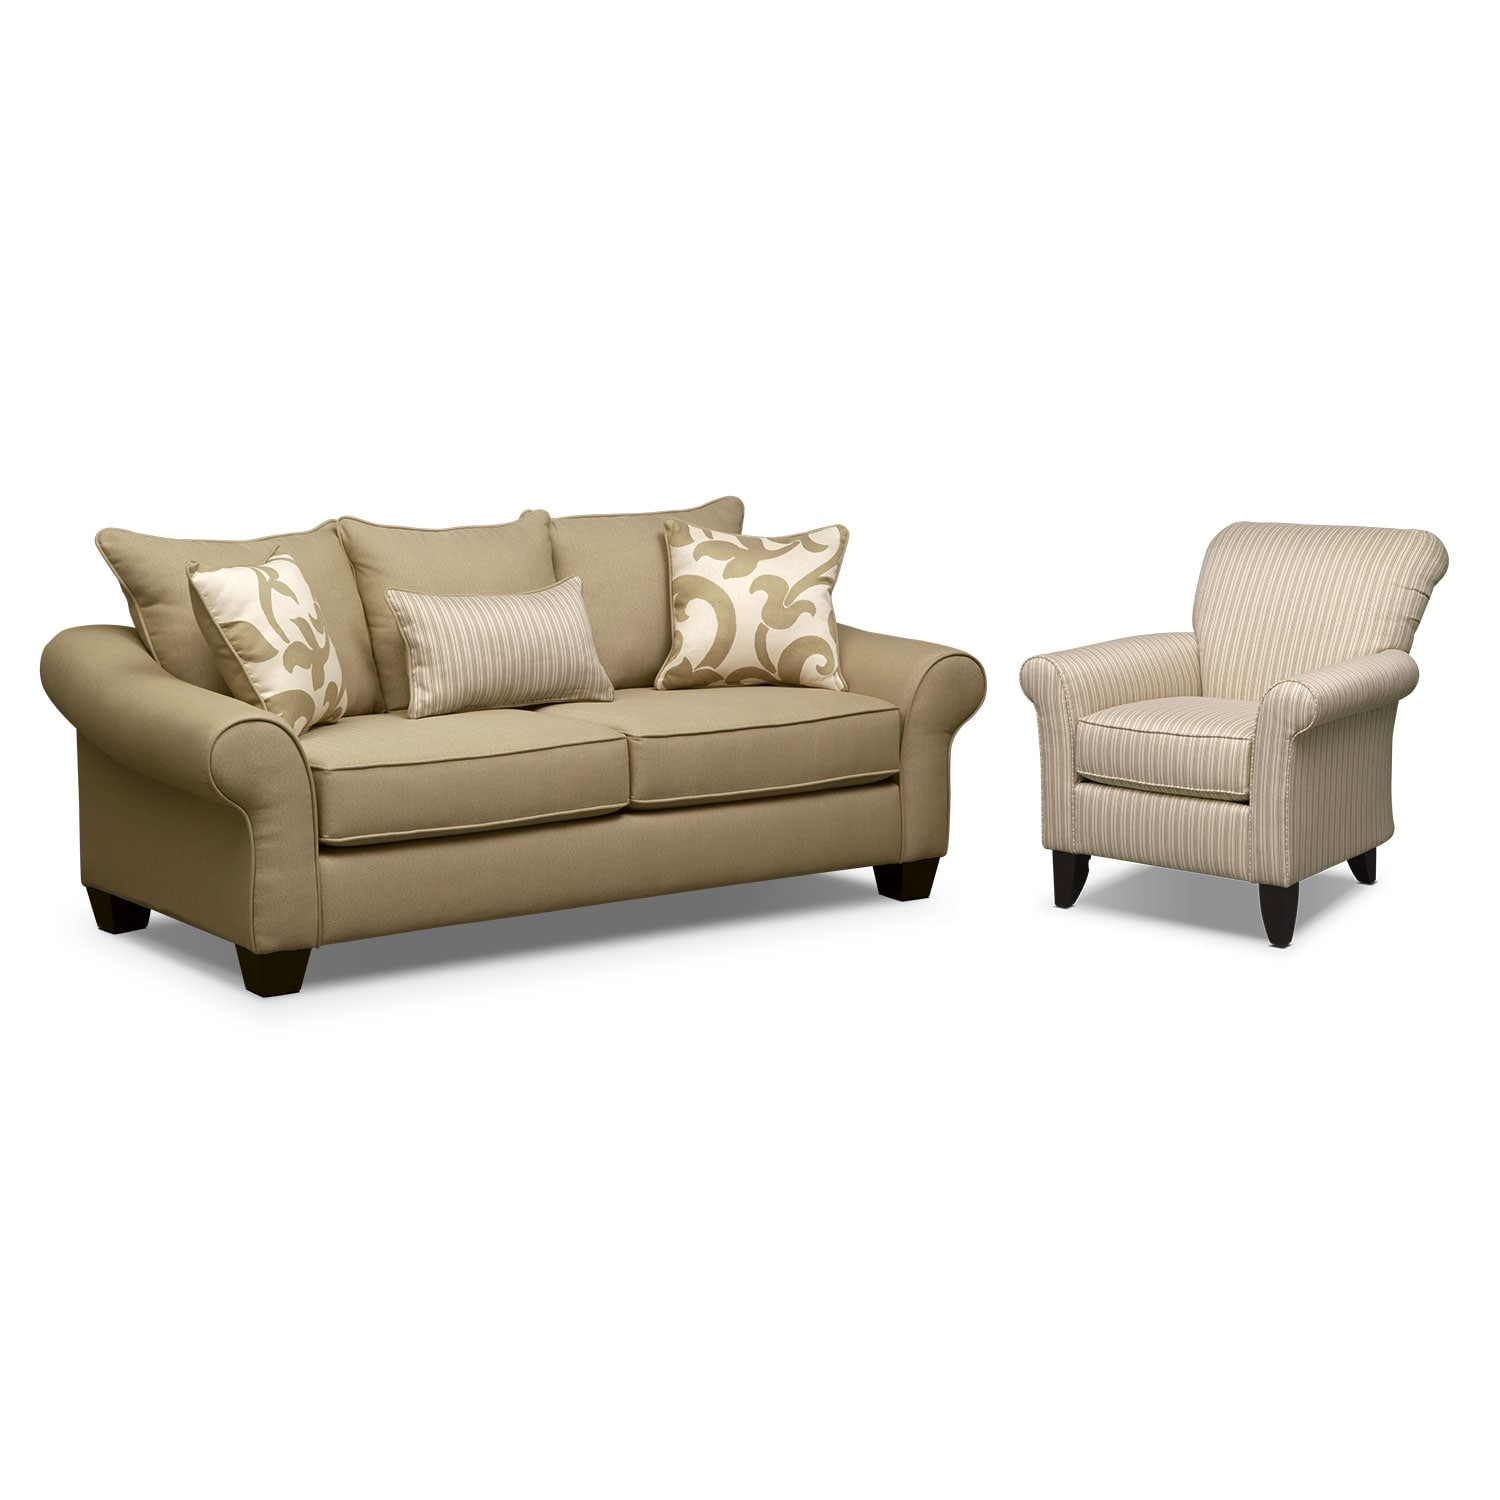 Colette Full Memory Foam Sleeper Sofa And Accent Chair Set Khaki American Signature Furniture